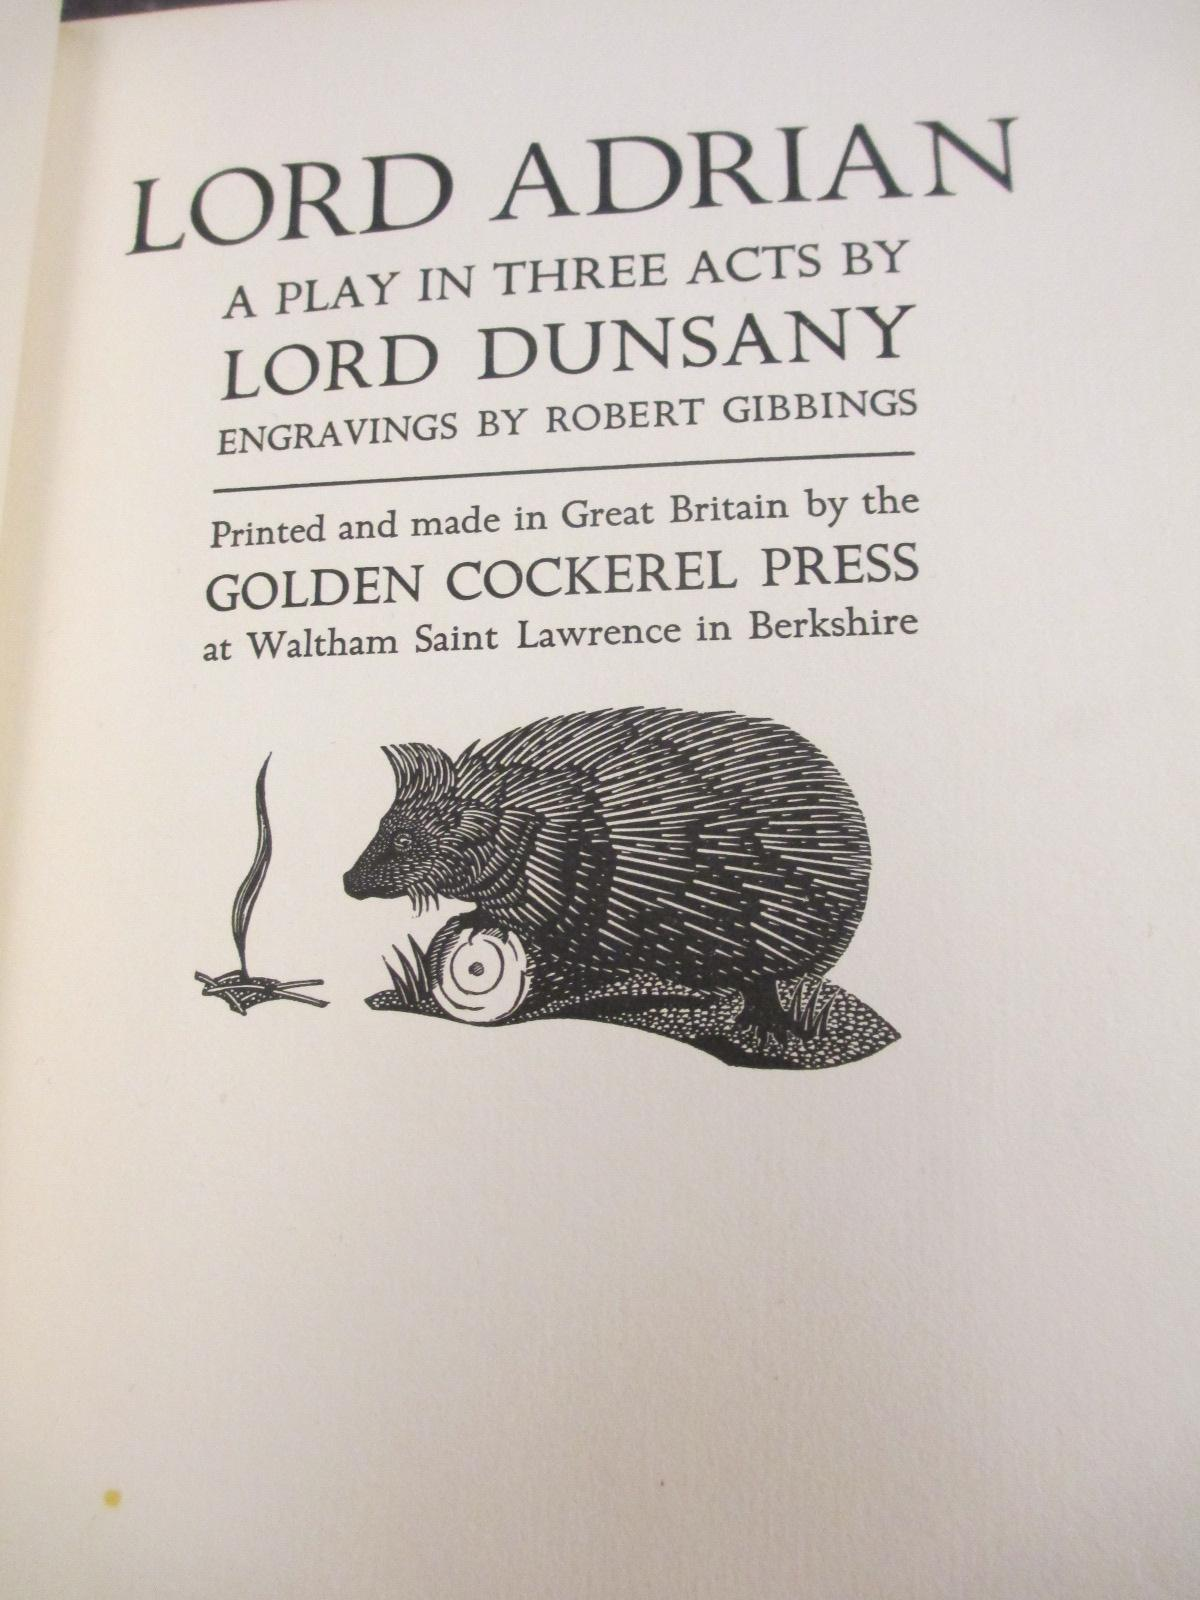 LORD ADRIAN: A PLAY IN THREE ACTS. Lord Dunsany, Robert Gibbings.